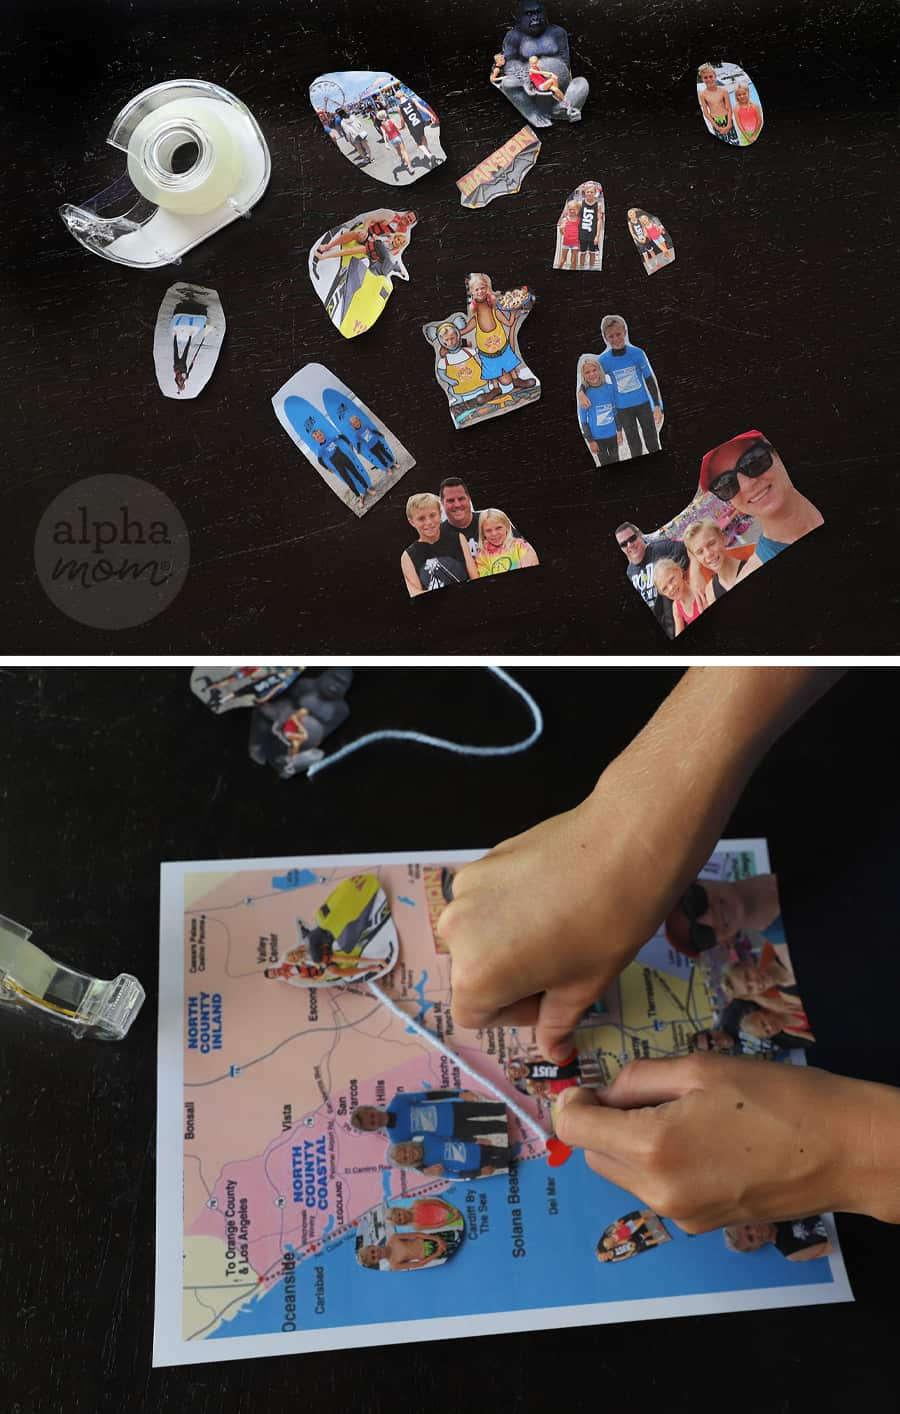 Diptych of overhead shots of cut out photos and hands pasting photos on to a small map